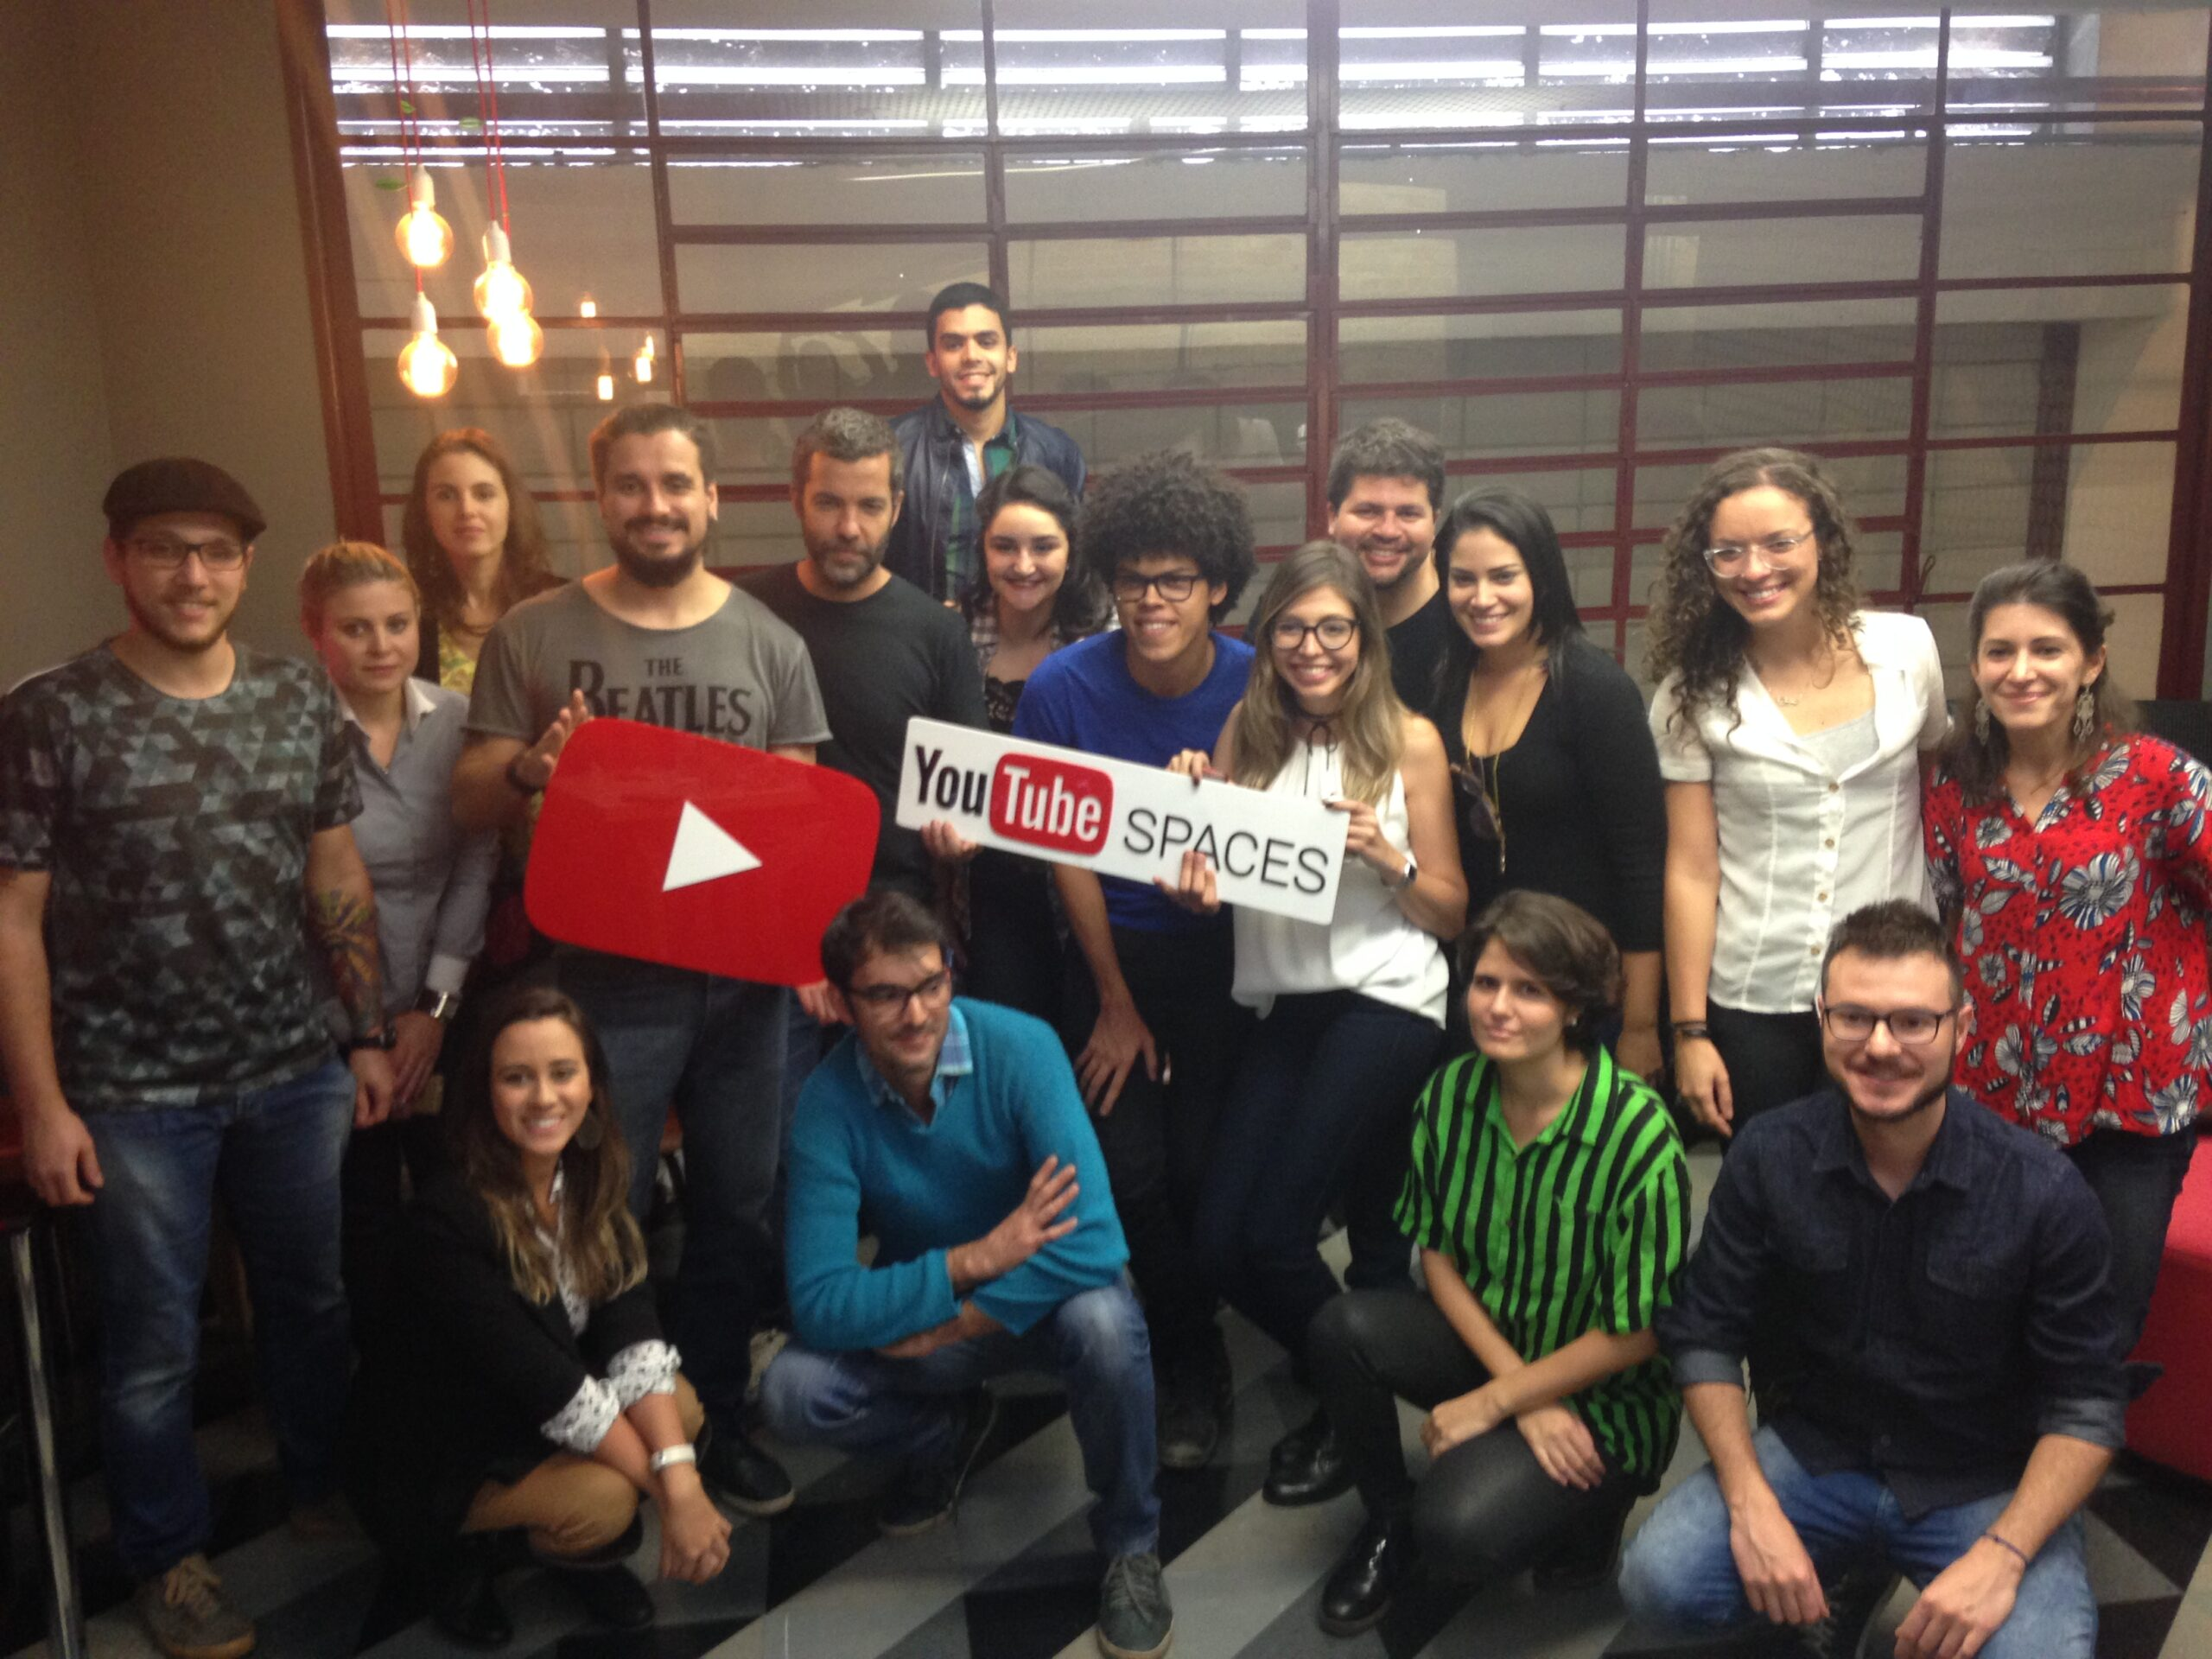 João Wainer and students from the online course at YouTube Space. (Marina Estarque/Knight Center)